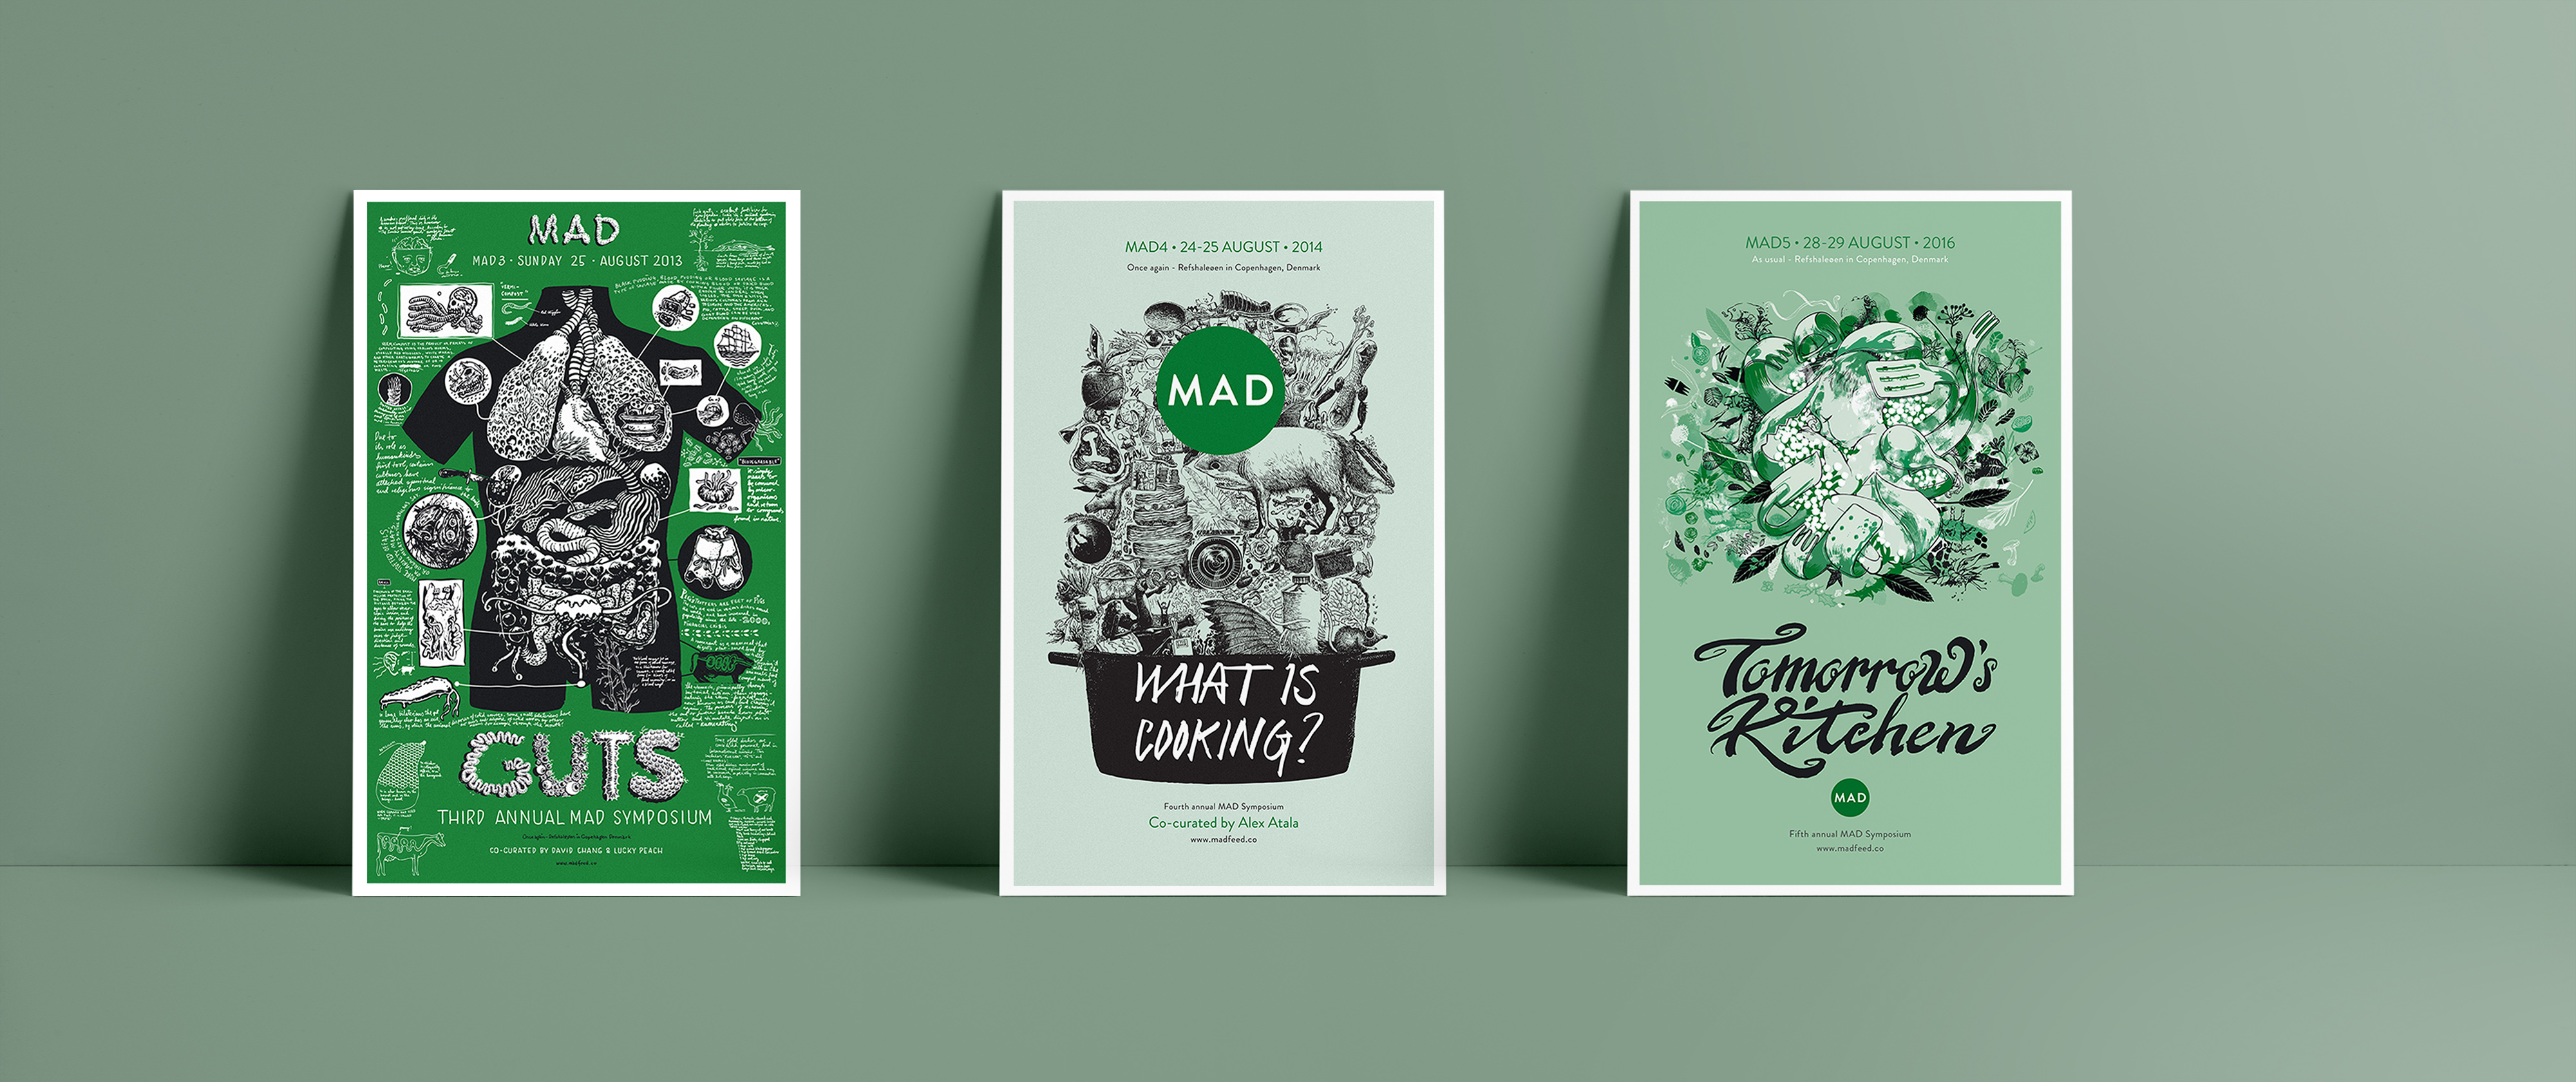 MAD_posters